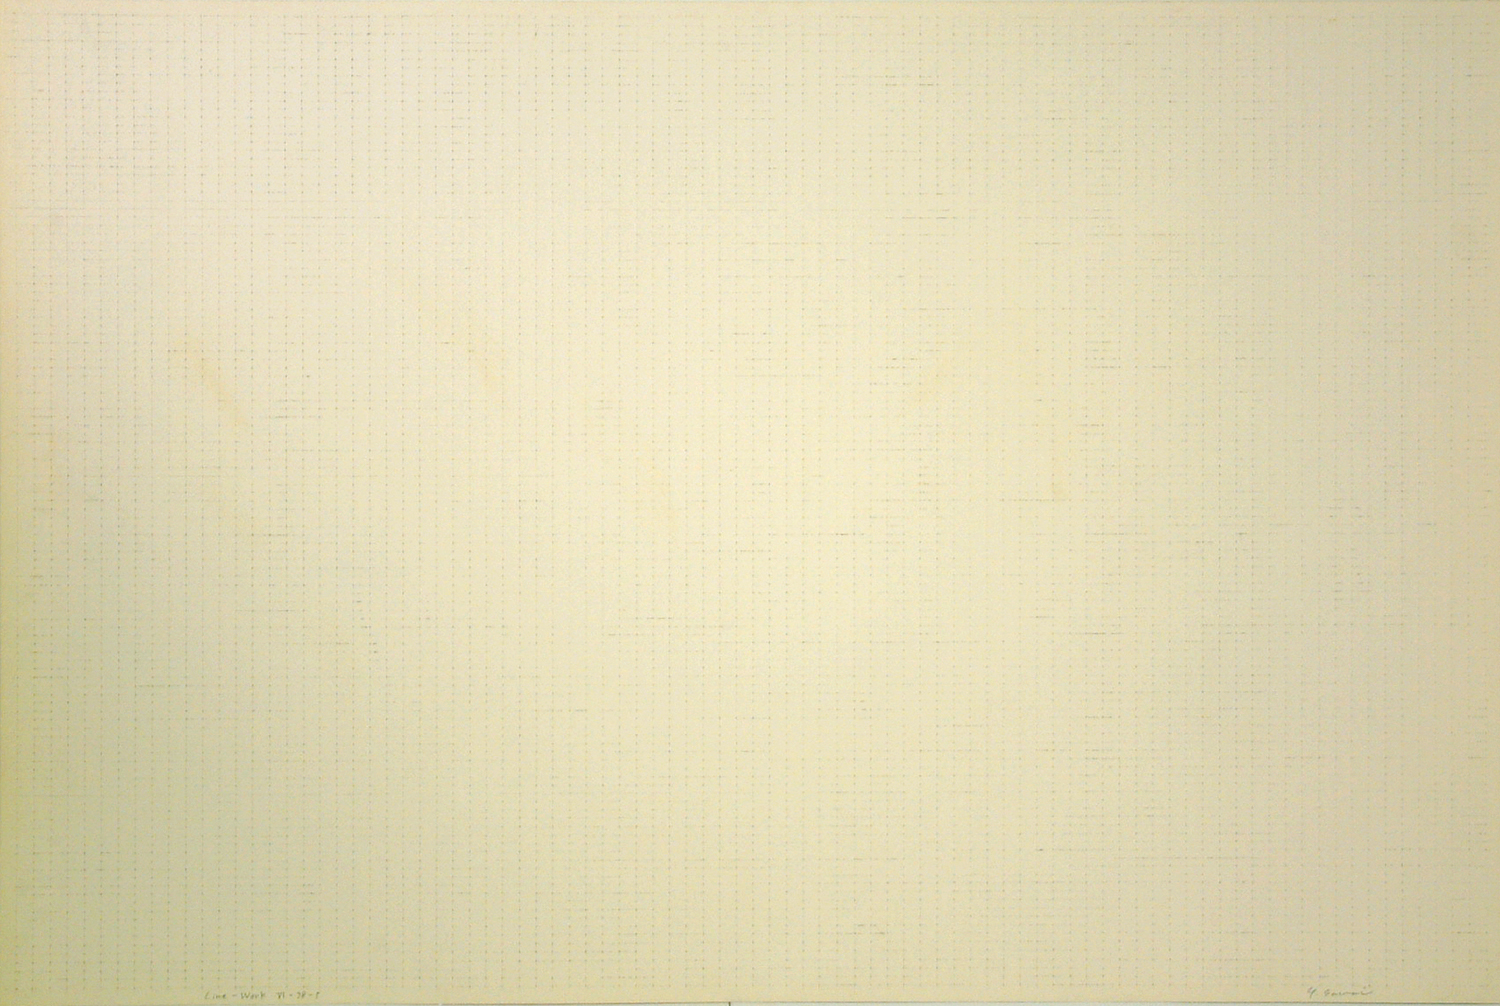 Line-Work IV-78-5|Acrylic, pencil on paper|60 x 89.6 cm|1978